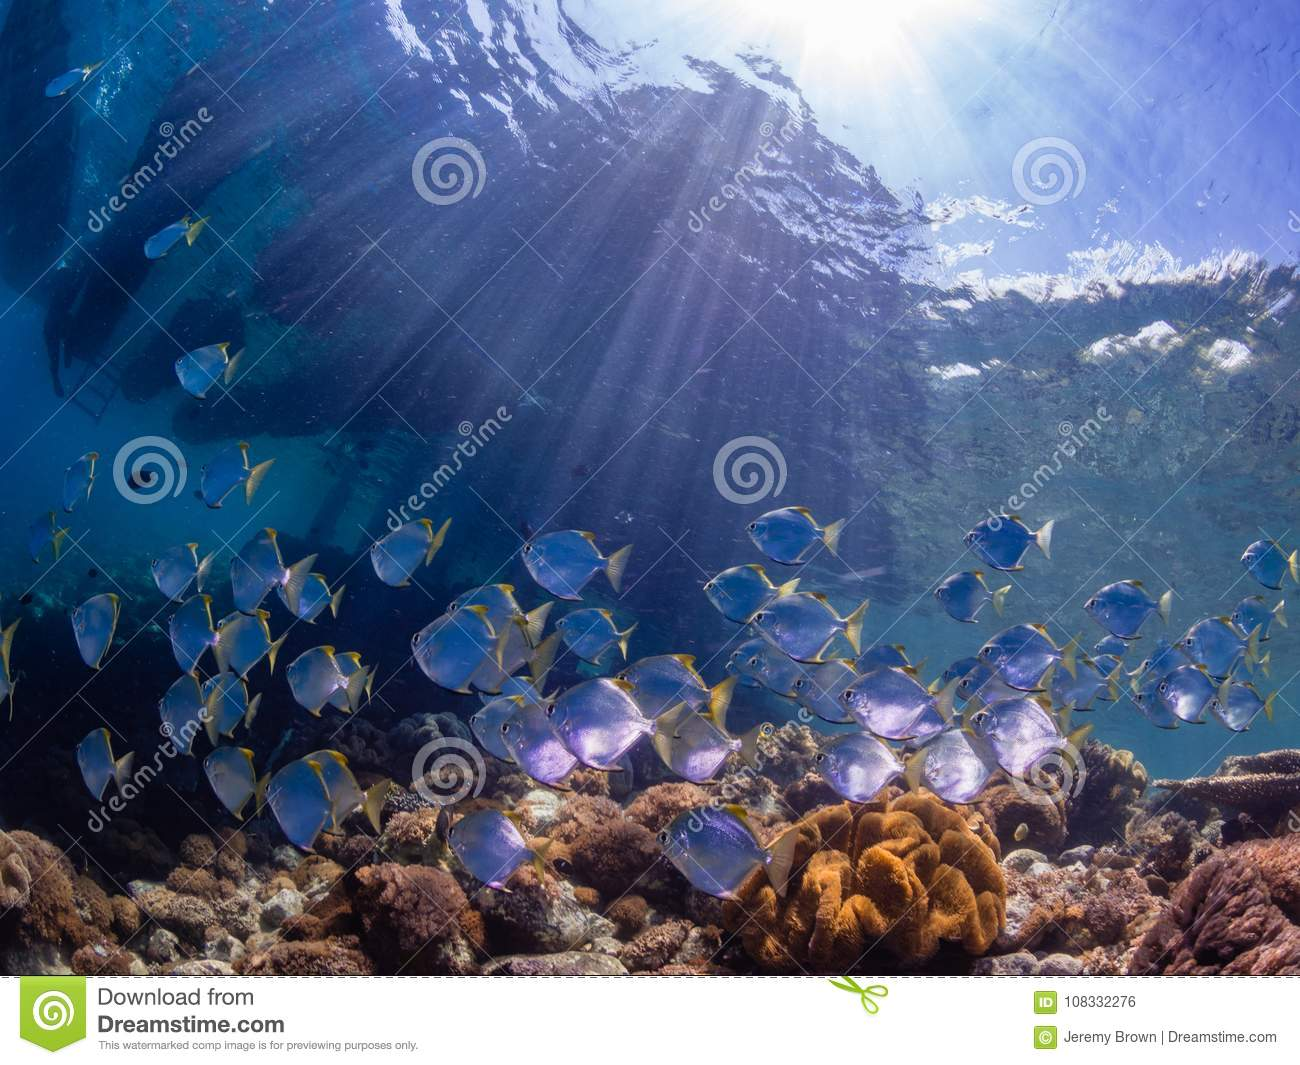 School of diamondfish on a pristine tropical coral reef